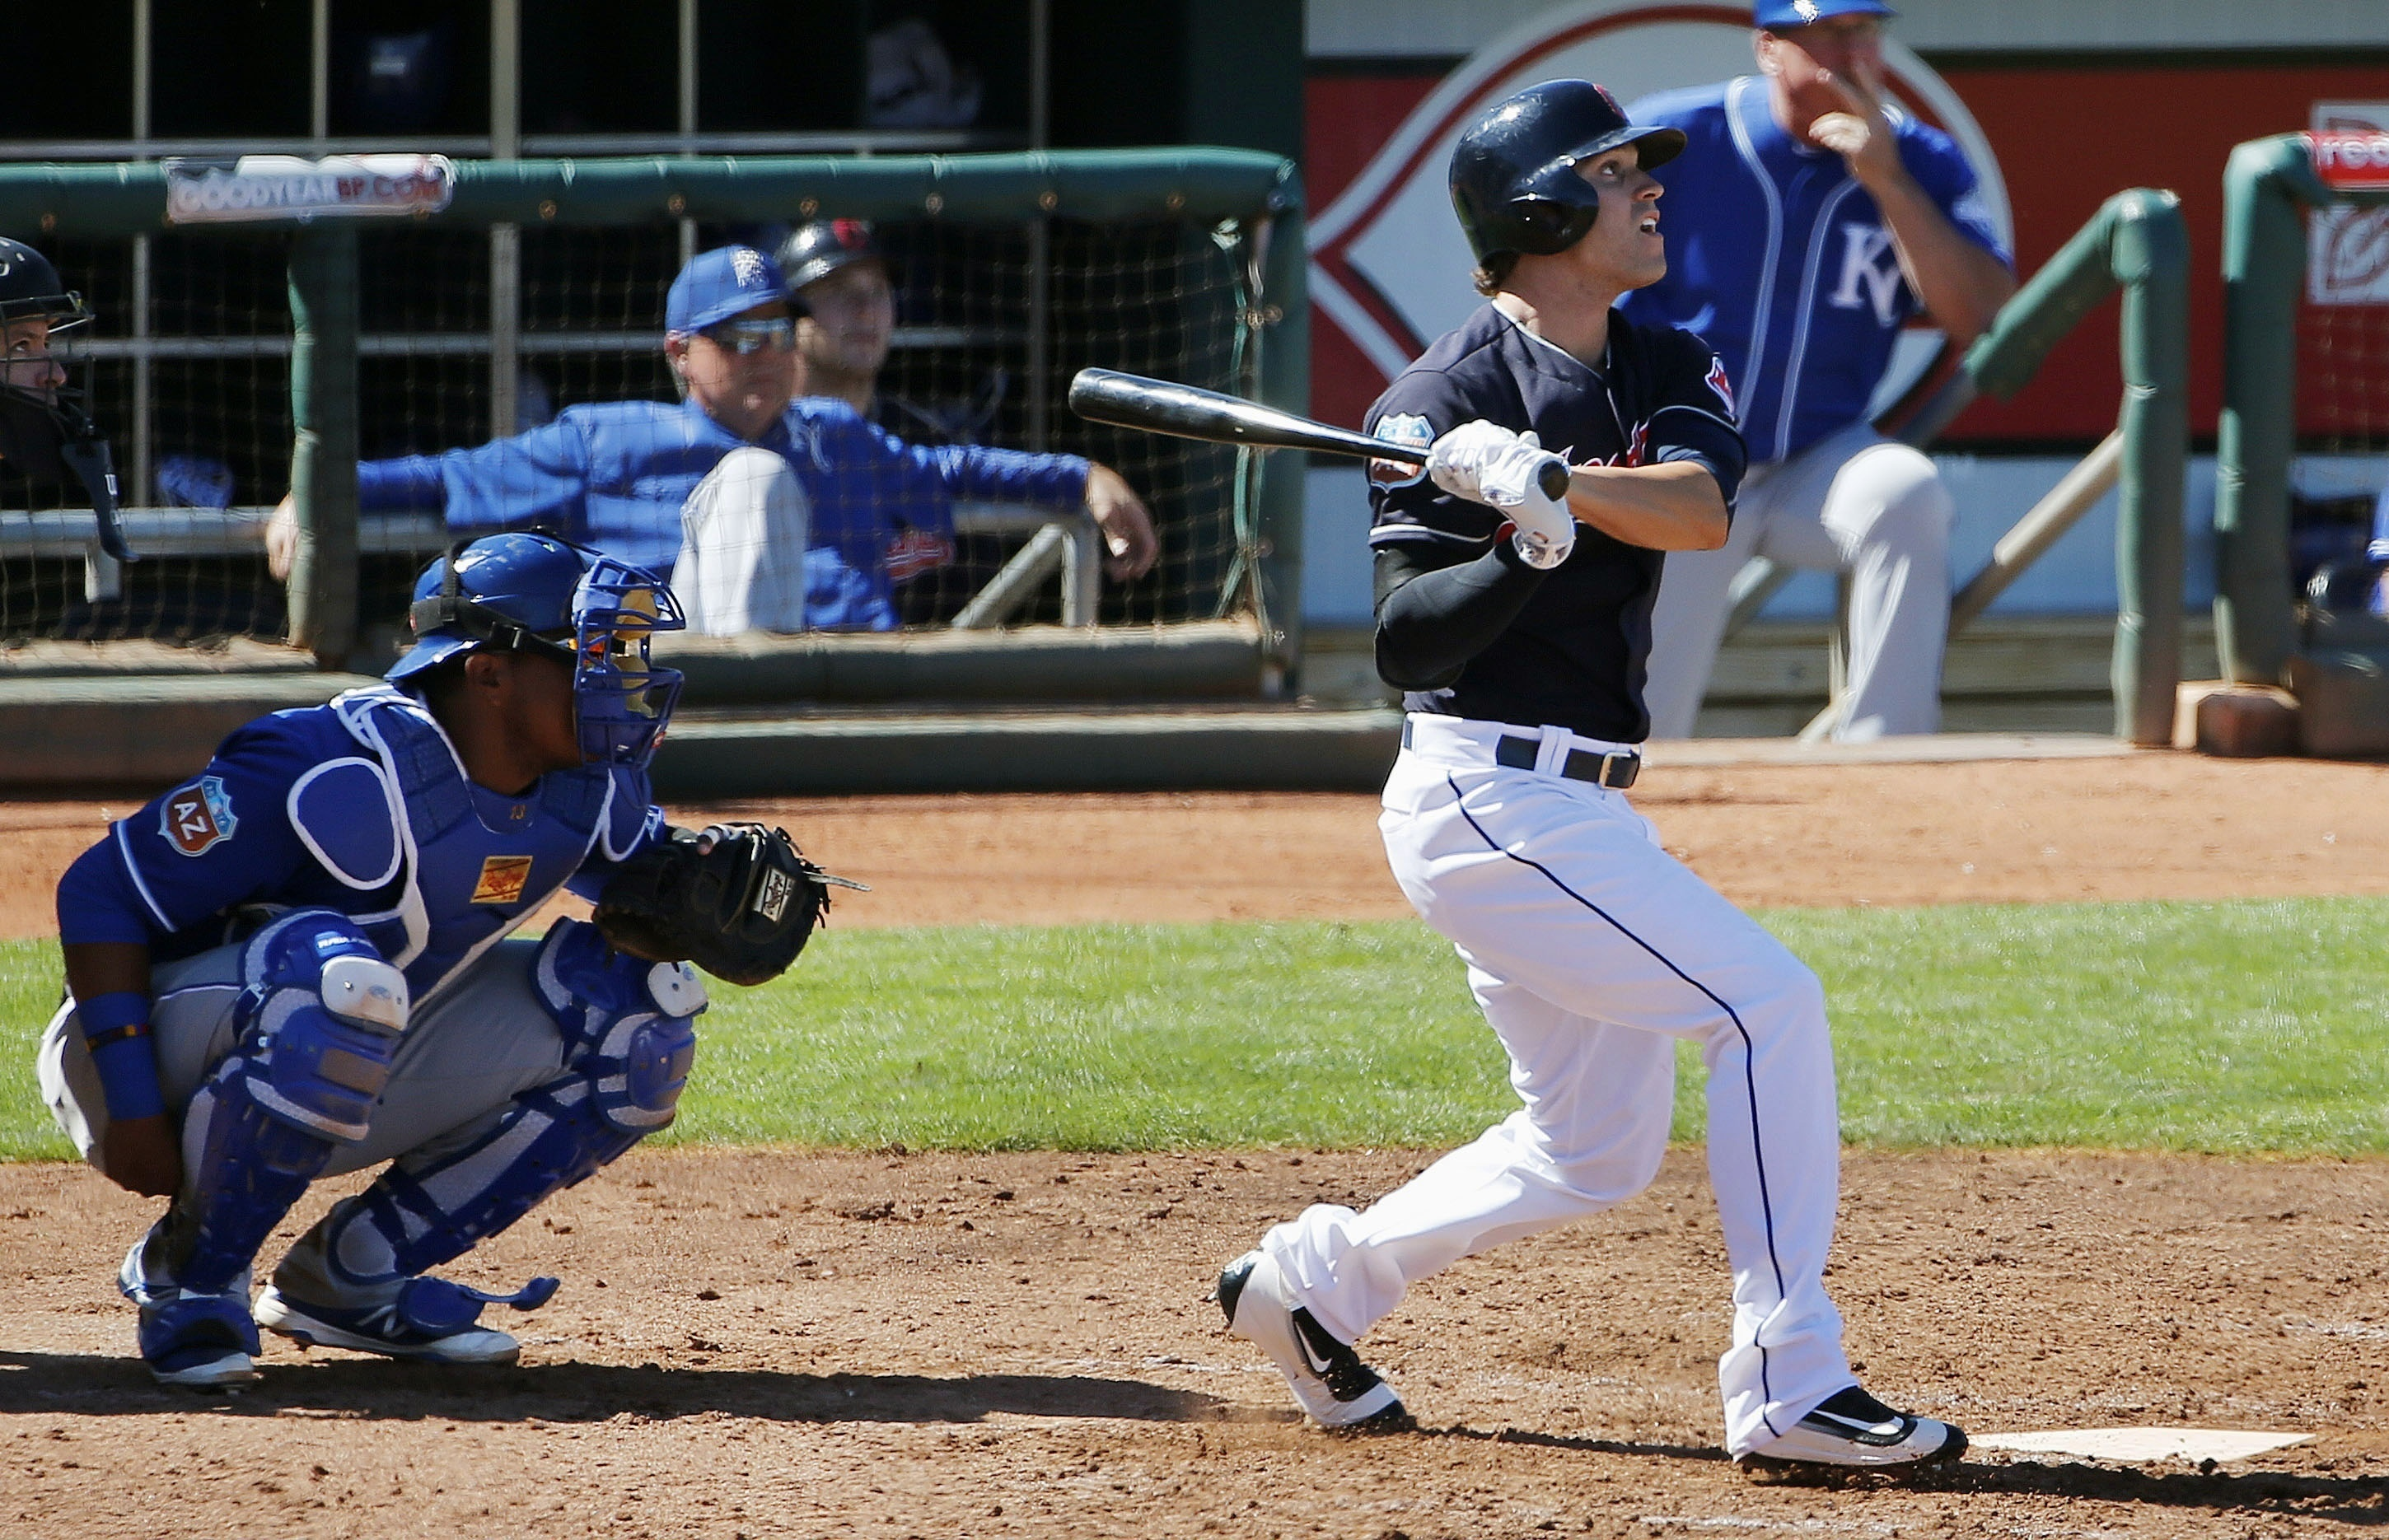 Cleveland Indians' Tyler Naquin, right, watches the flight of his home run as Kansas City Royals' Salvador Perez, left, looks on during the fourth inning of a spring training baseball game Wednesday, March 23, 2016, in Goodyear, Ariz. (AP Photo/Ross D. Fr